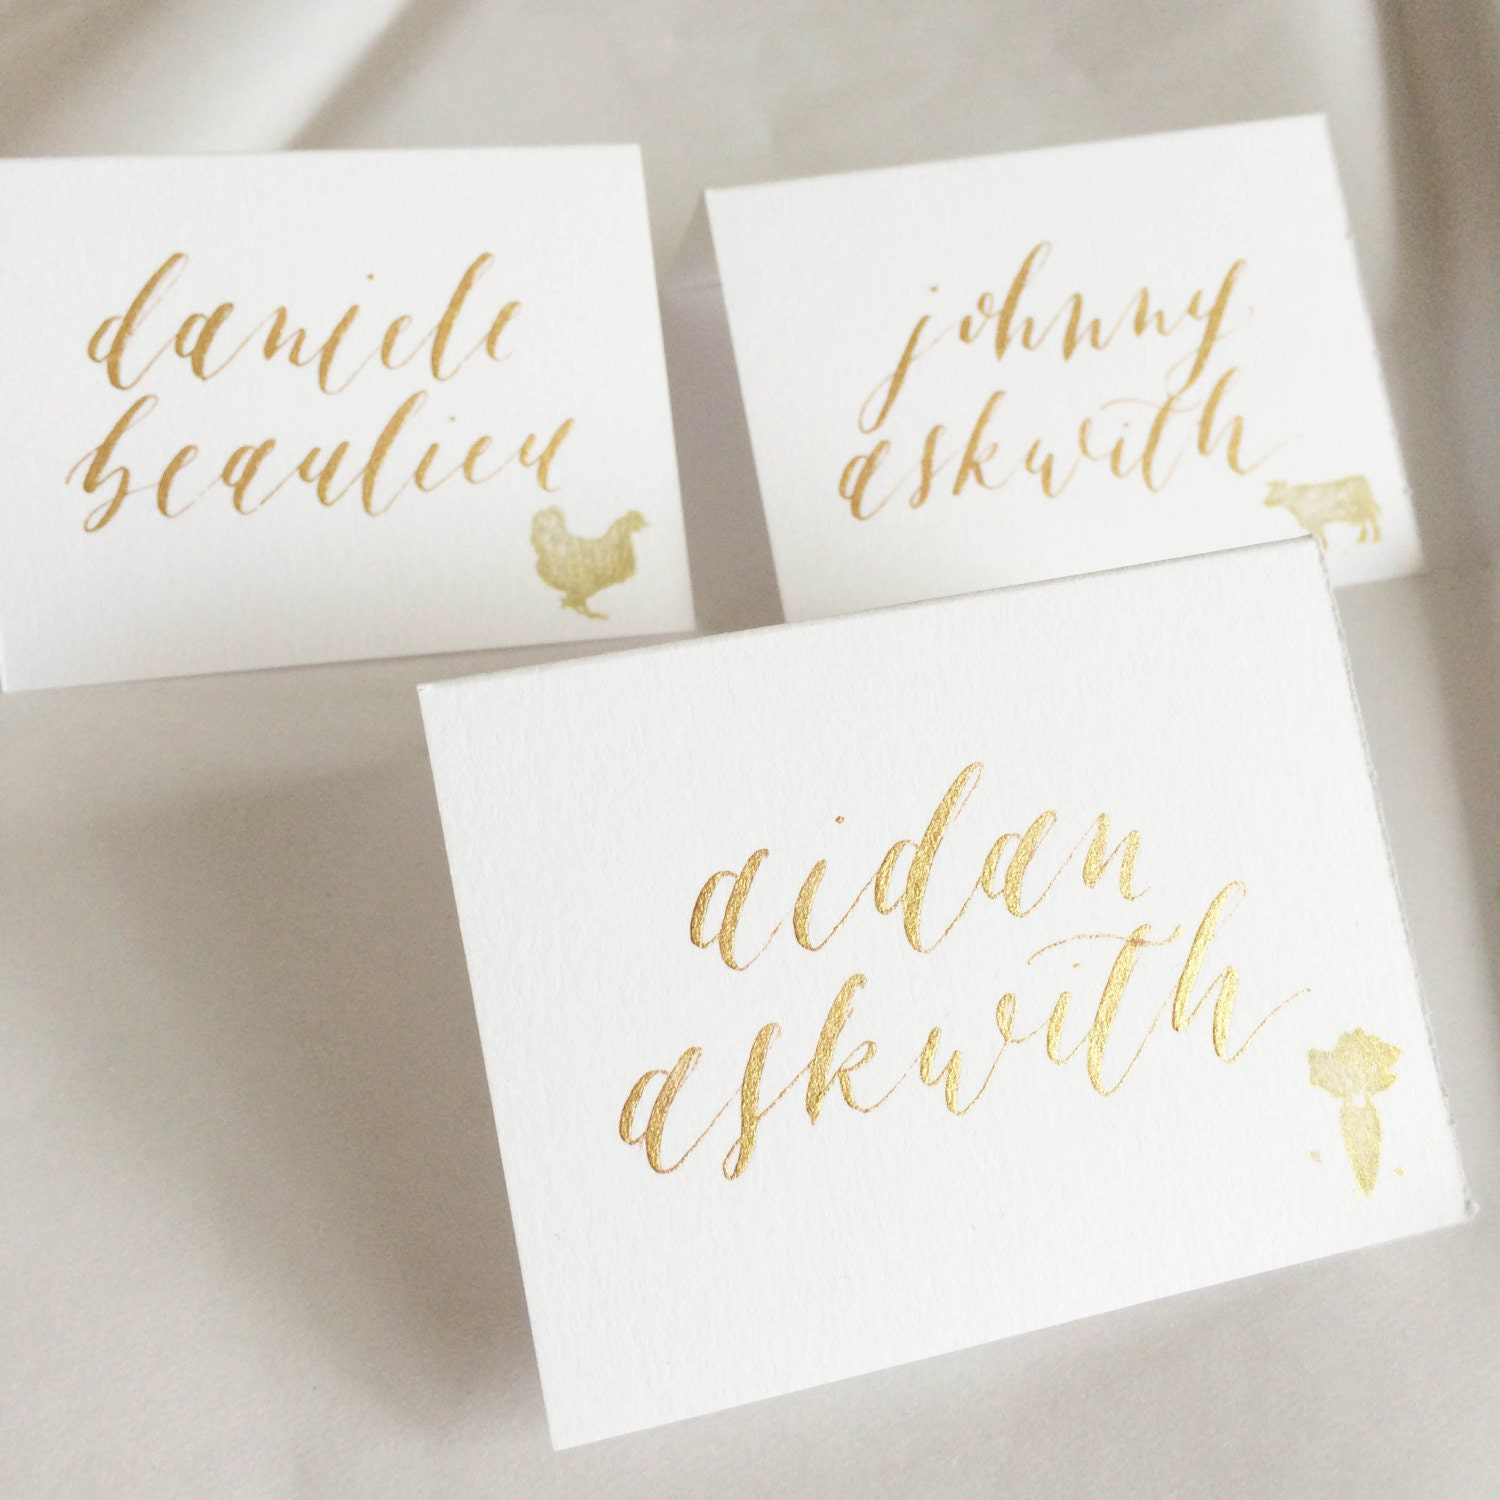 Custom Calligraphy Place Cards Name Cards Escort Cards For